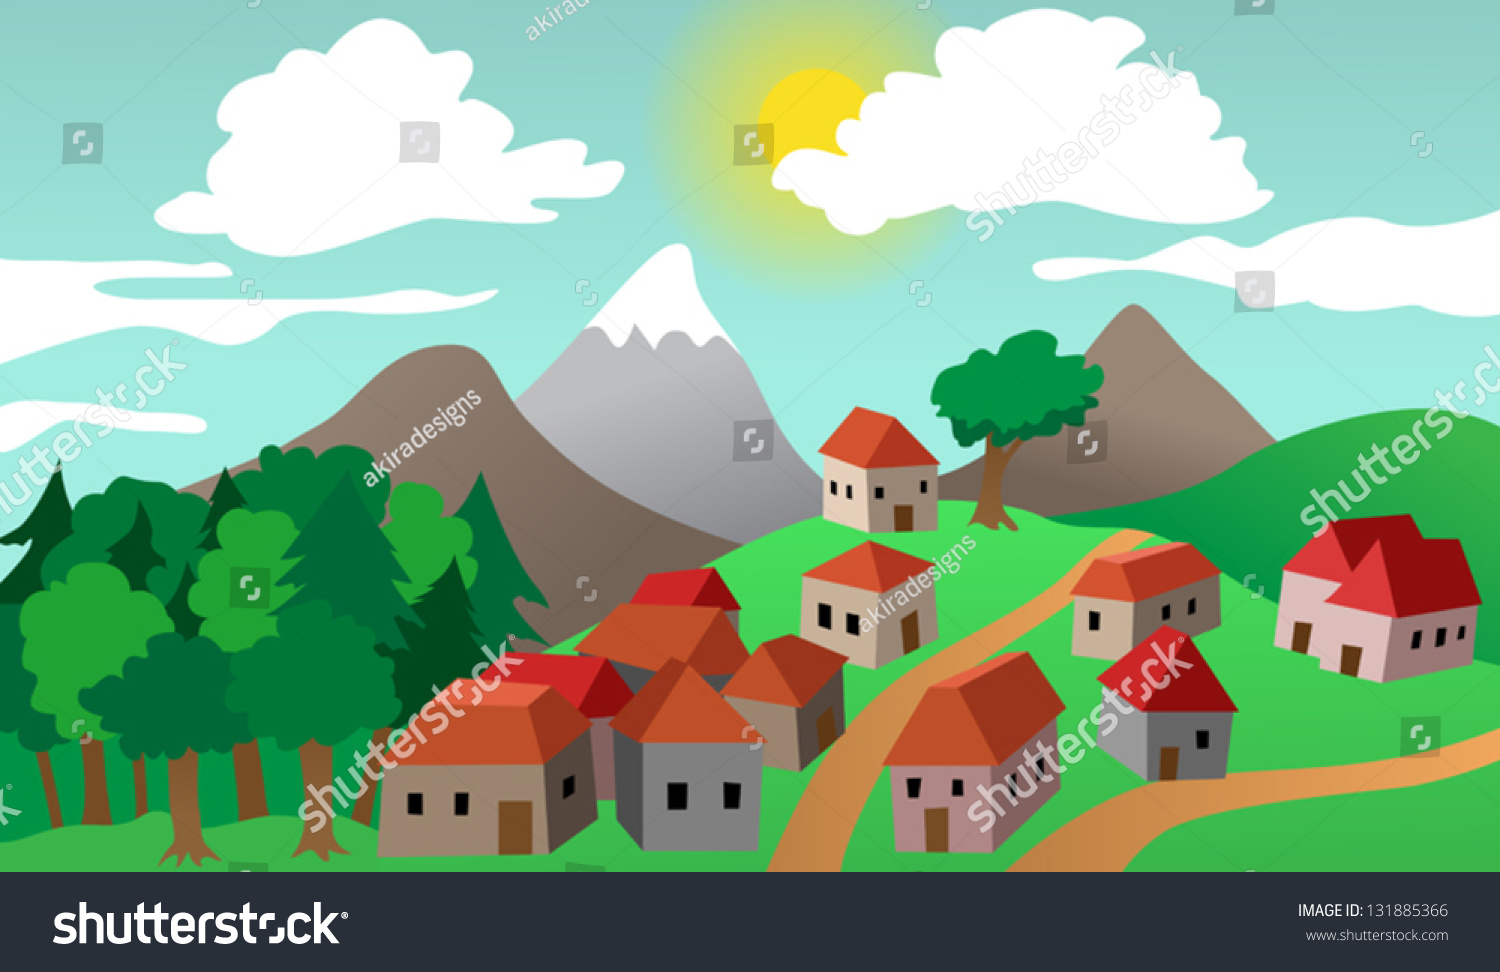 mountain town clip art